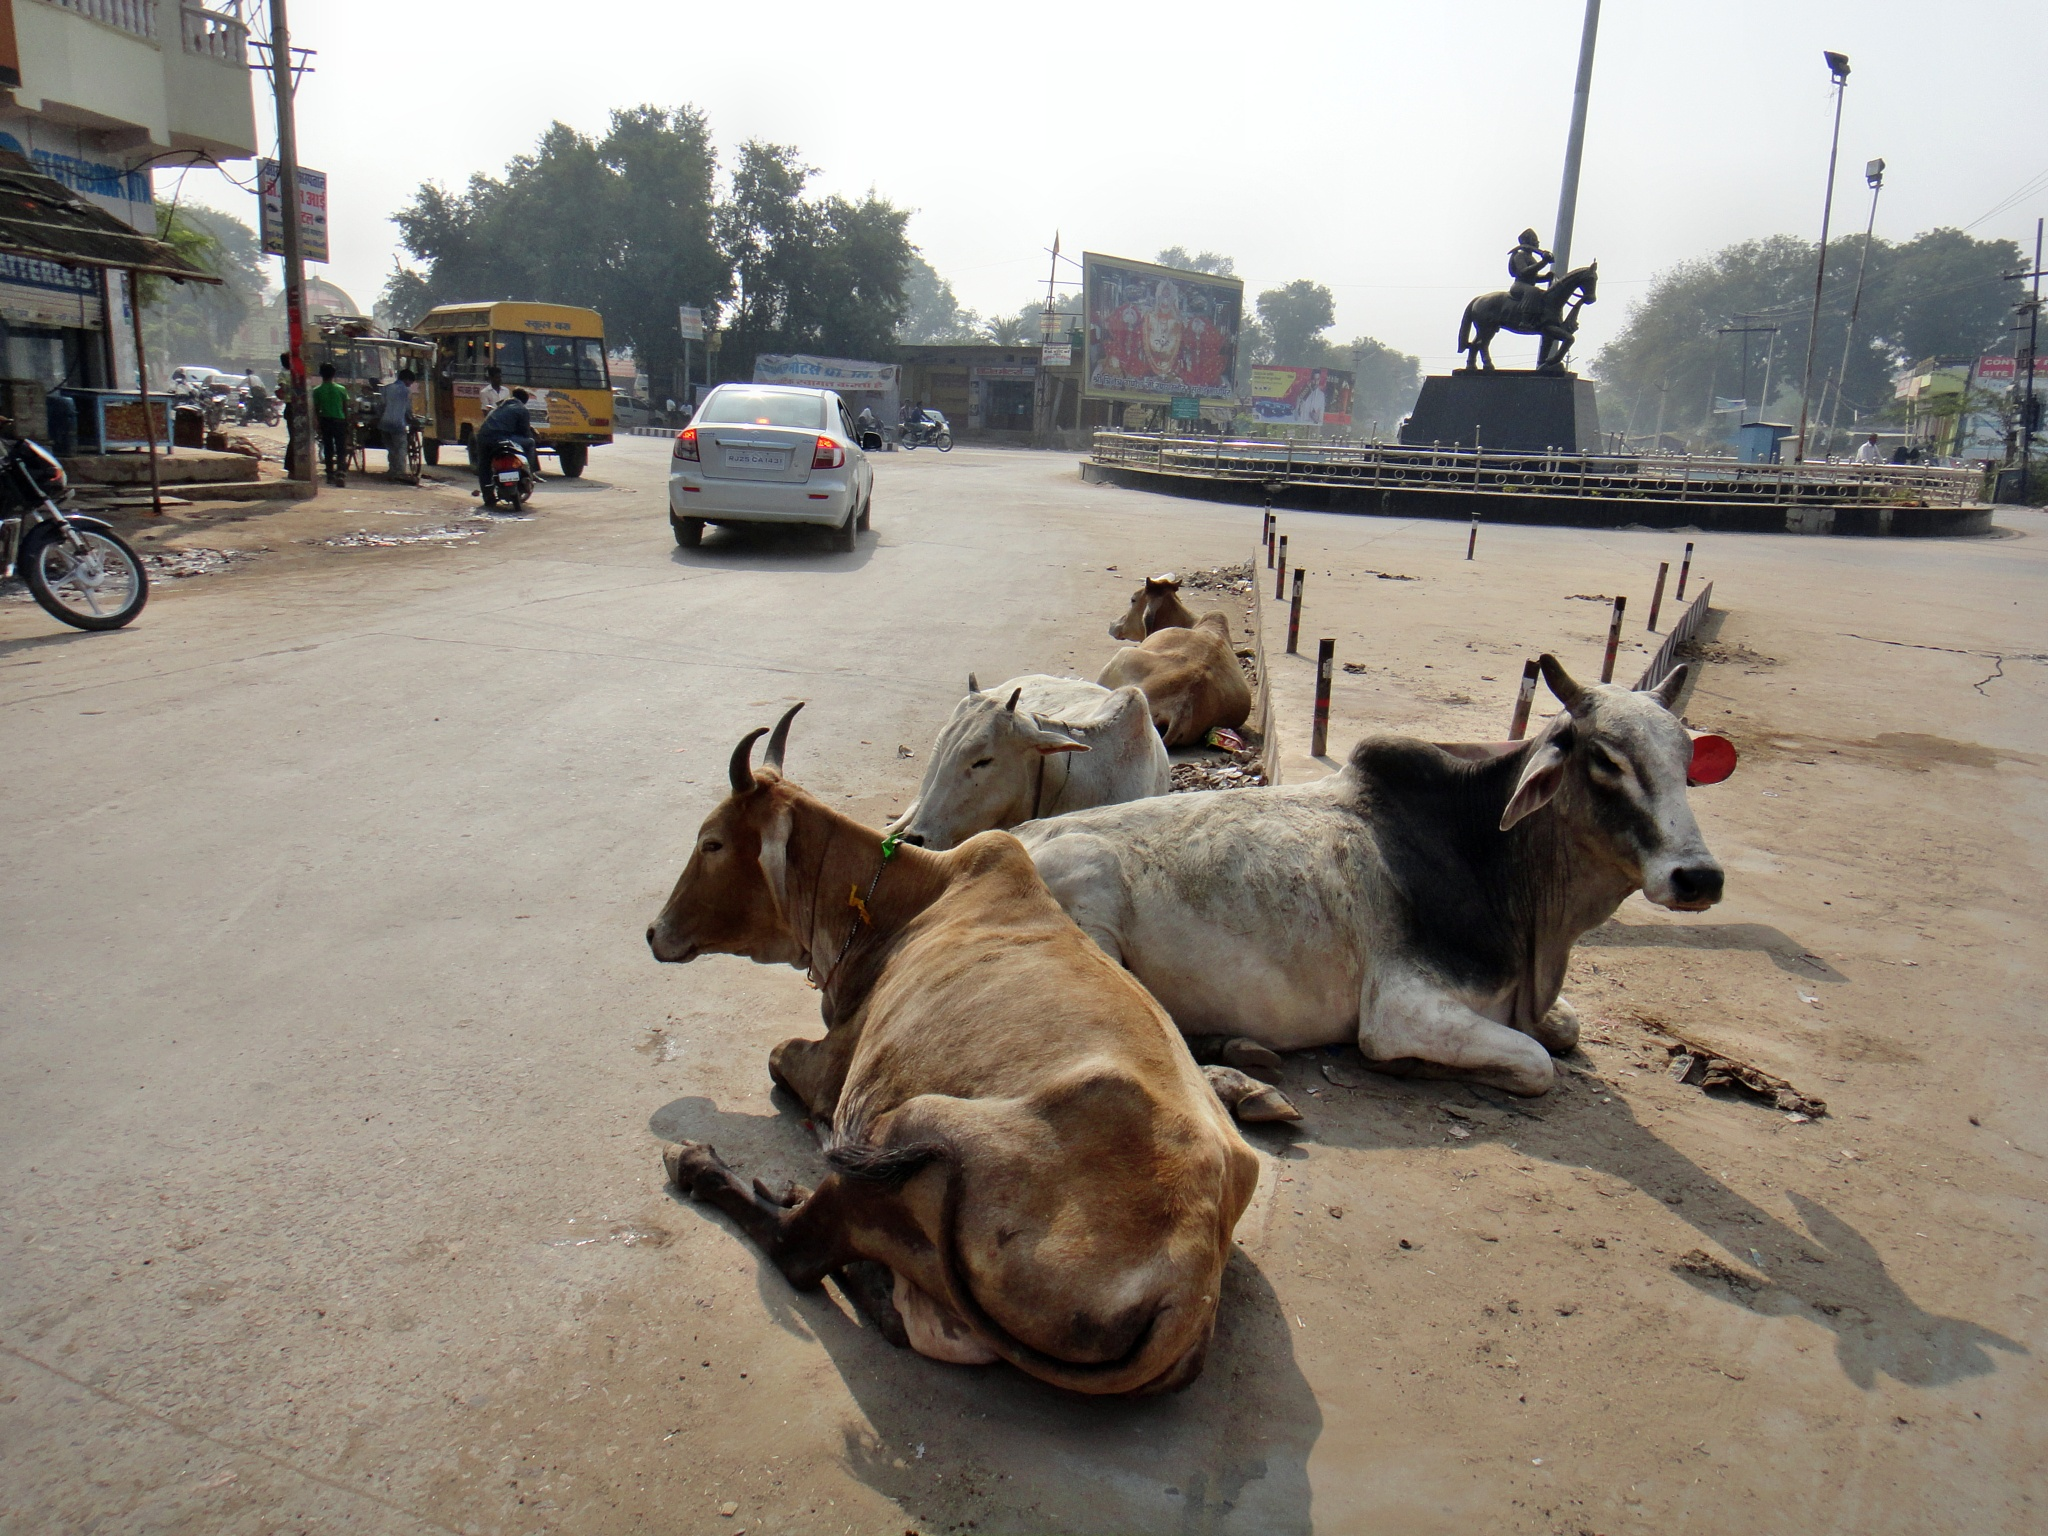 Trafic in India by Hans Andreasson